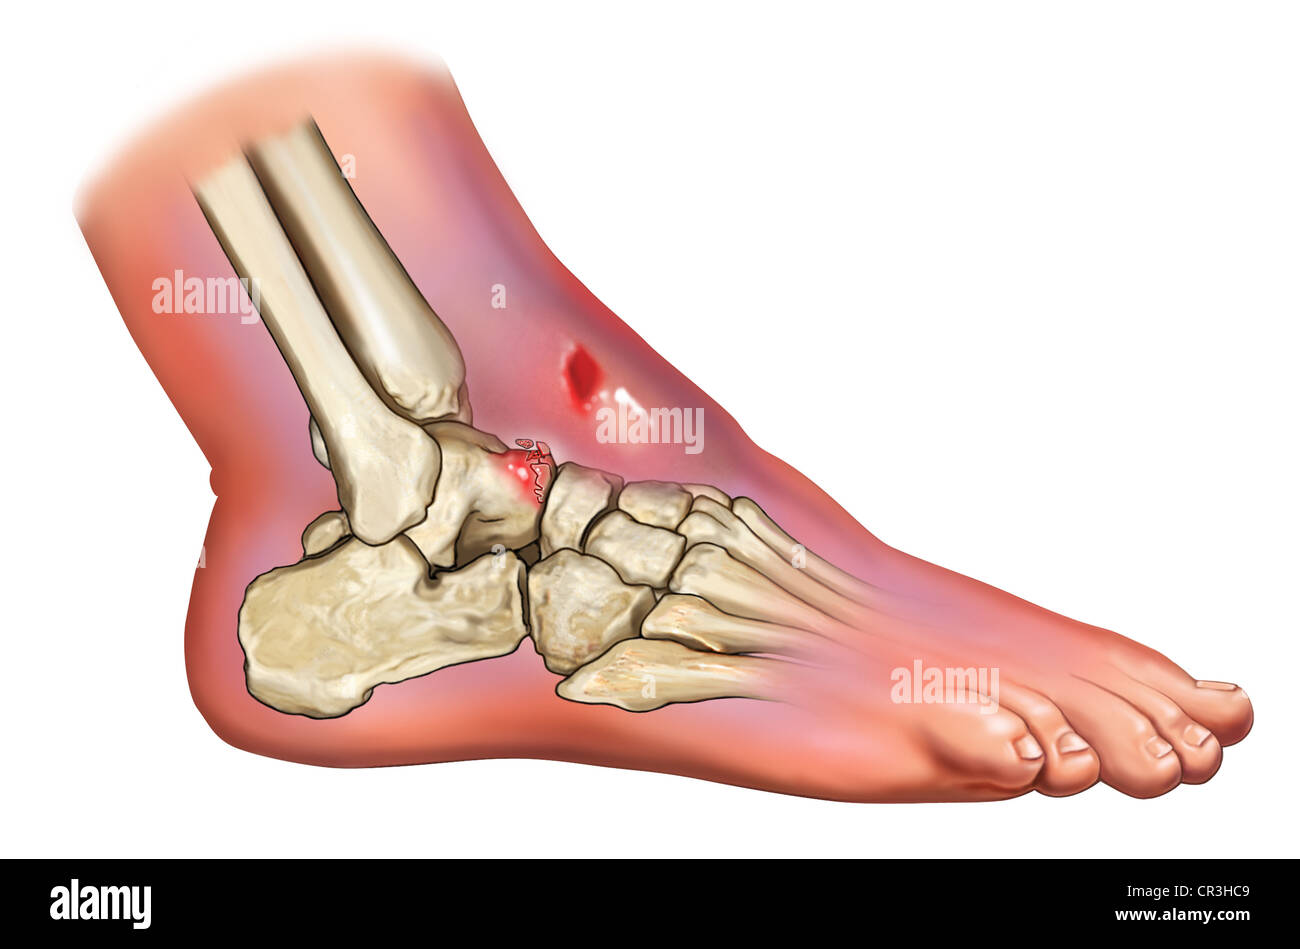 Talus foot. Fracture of the talus of the foot: consequences 21